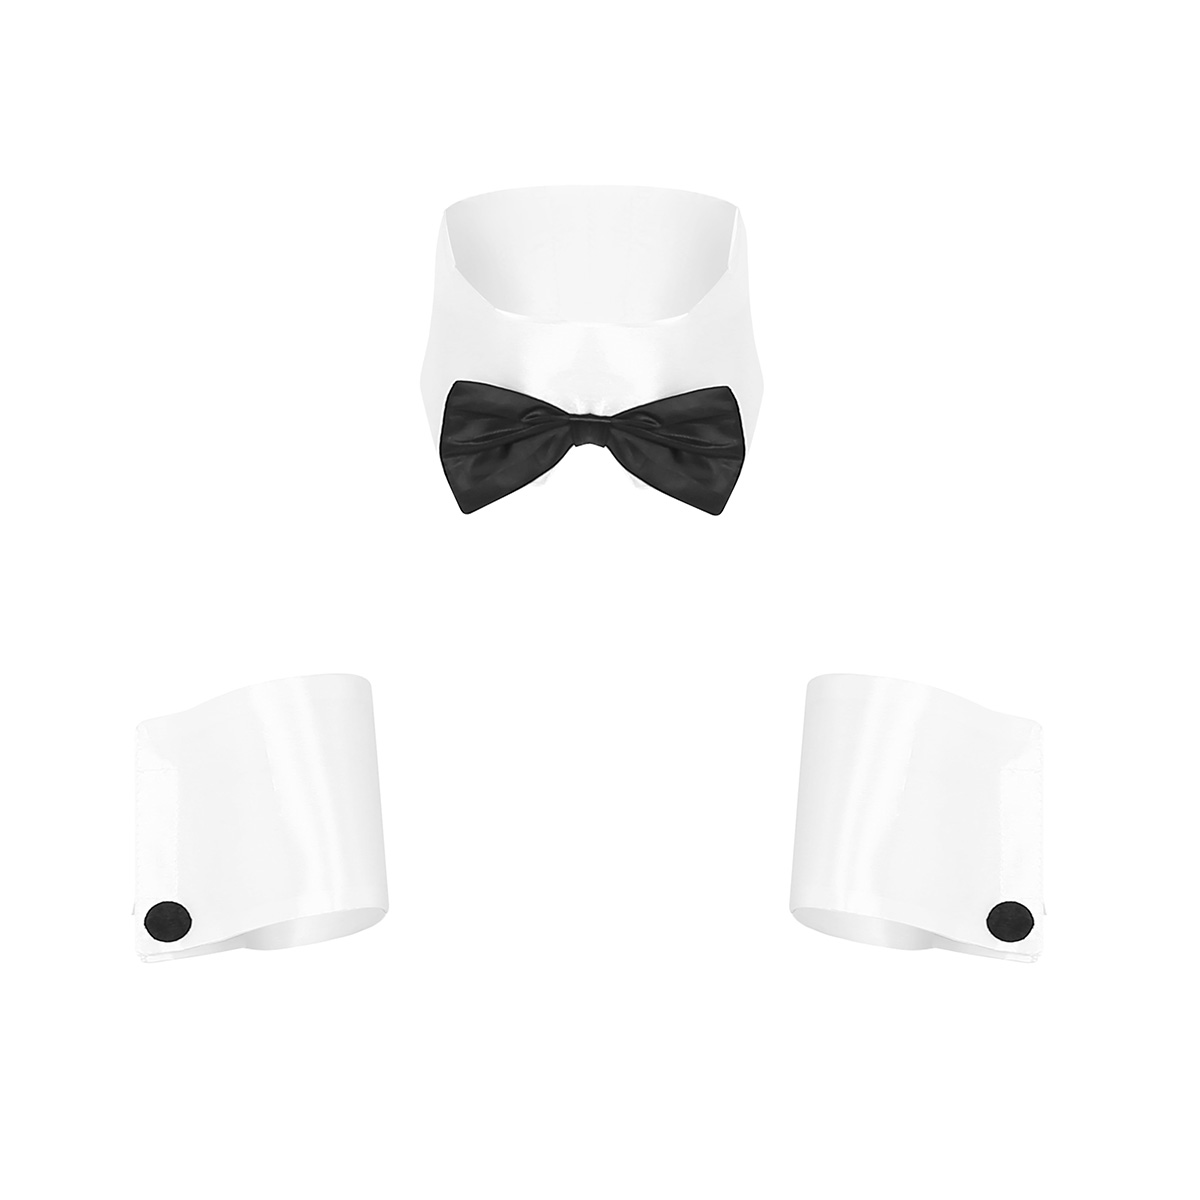 ChicTry Gay <font><b>Mens</b></font> <font><b>Sexy</b></font> Costume Accessories Collar and Cuff Set Male Dancer <font><b>Sexy</b></font> Stripper <font><b>Cosplay</b></font> Costume Waiter Lingerie Costumes image